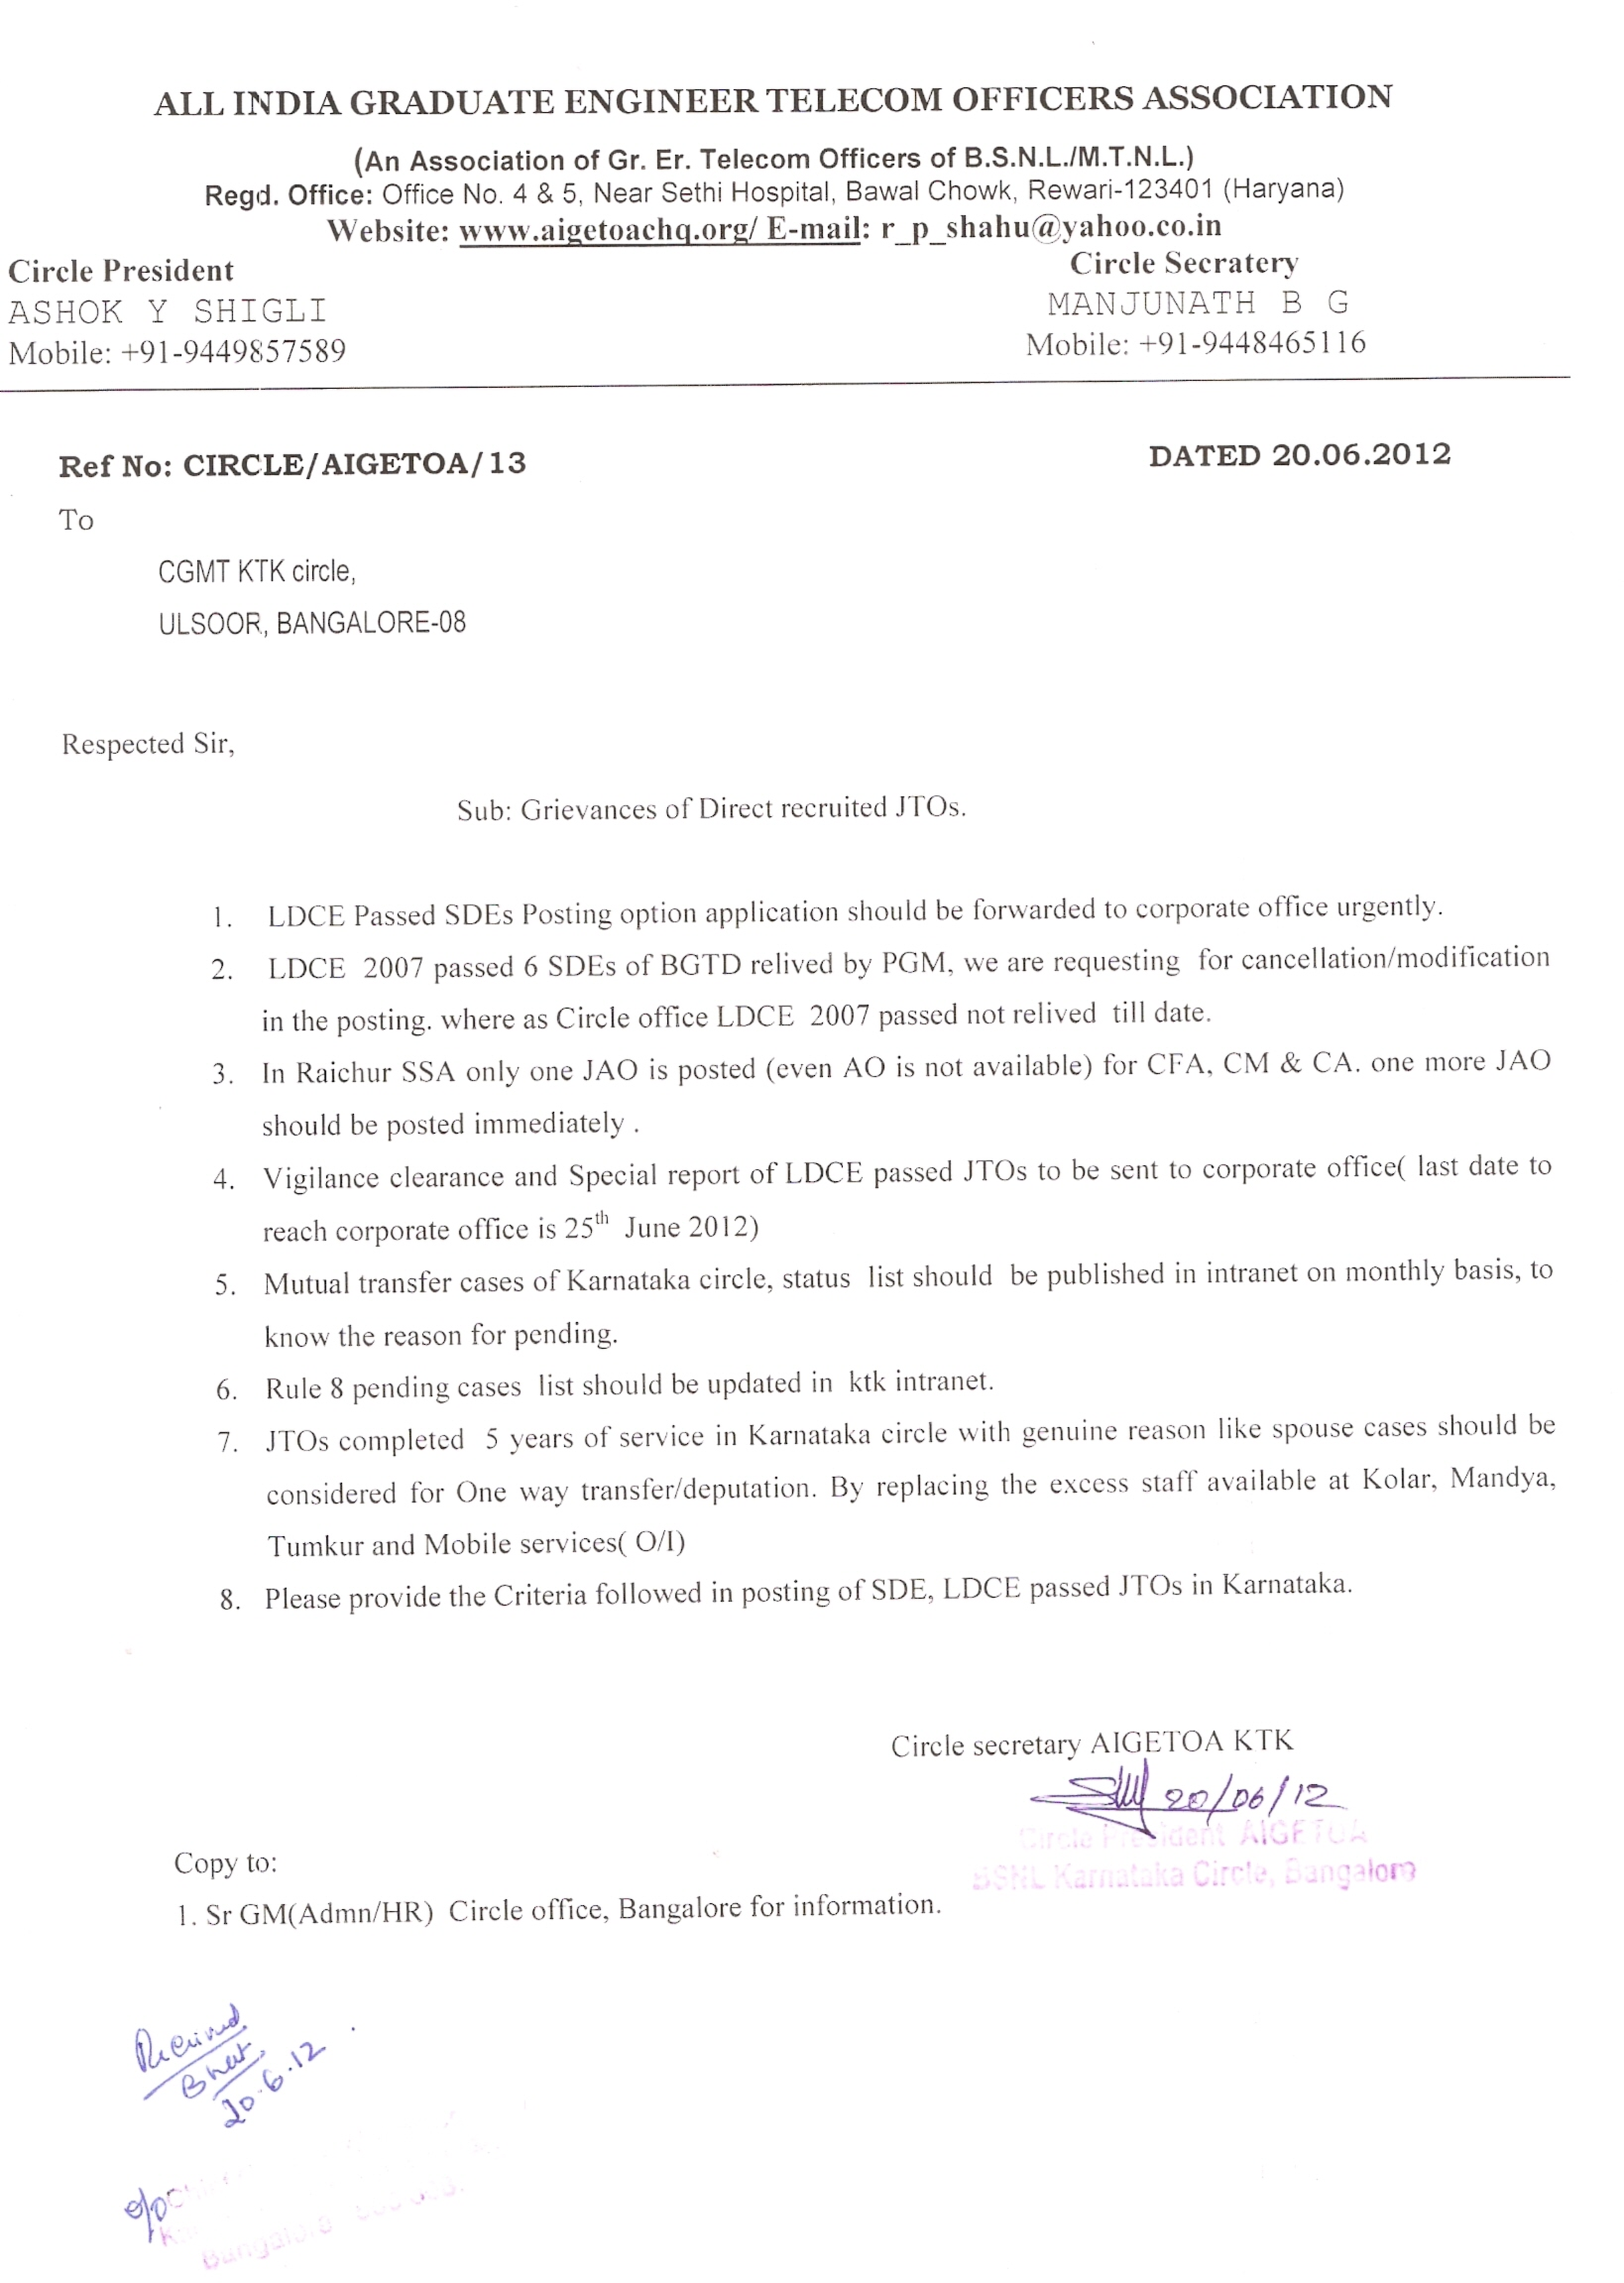 ltr to CGMT 20.06.12